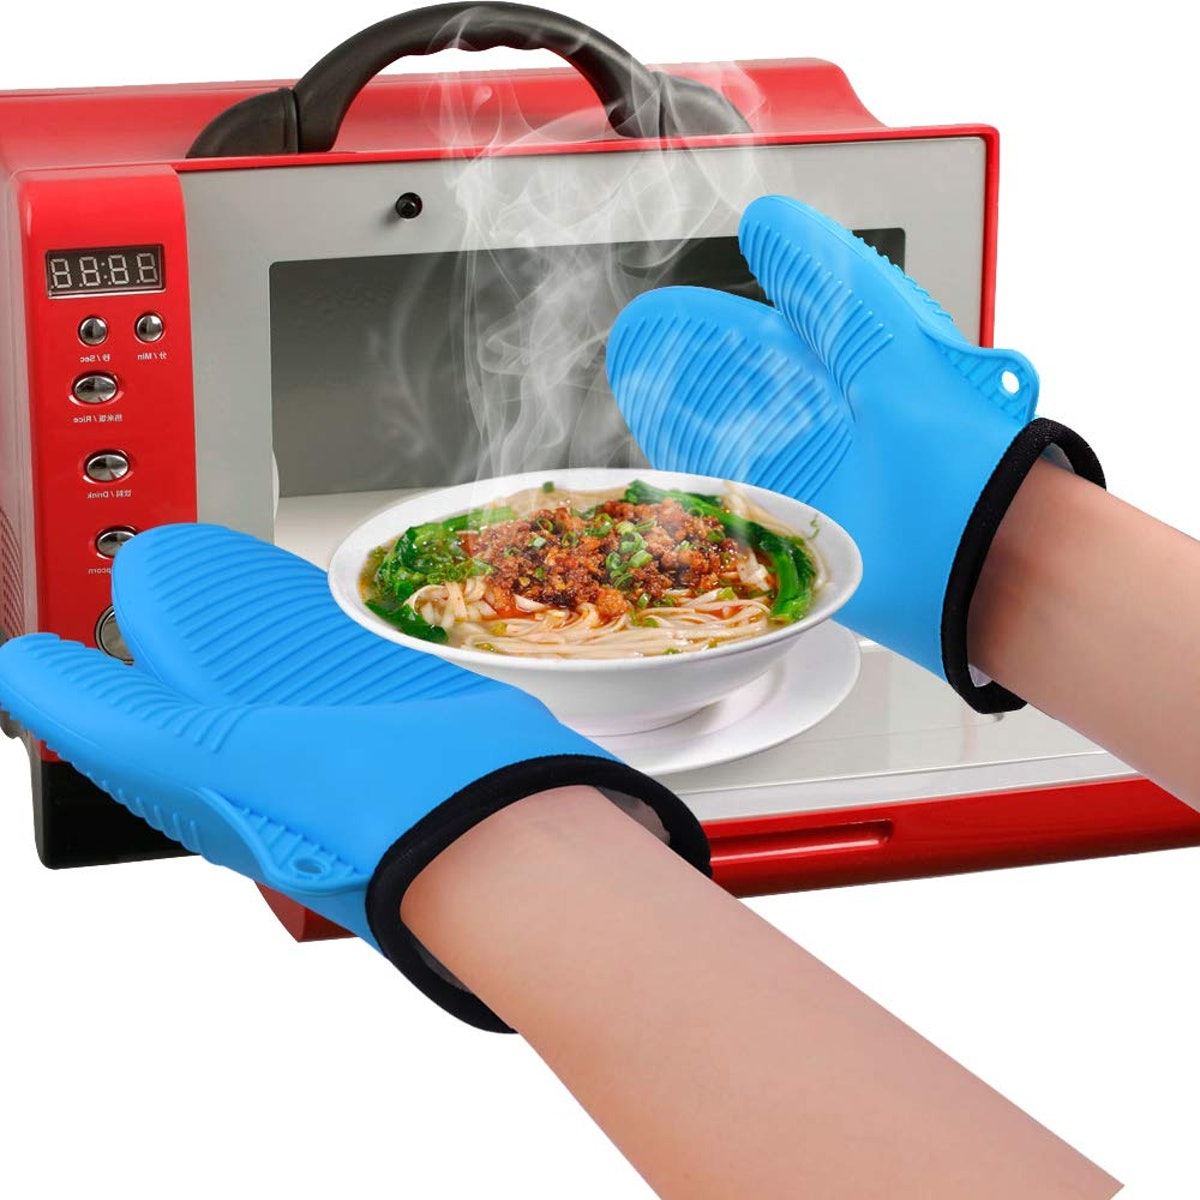 GEEKHOM Silicone Oven Mitts